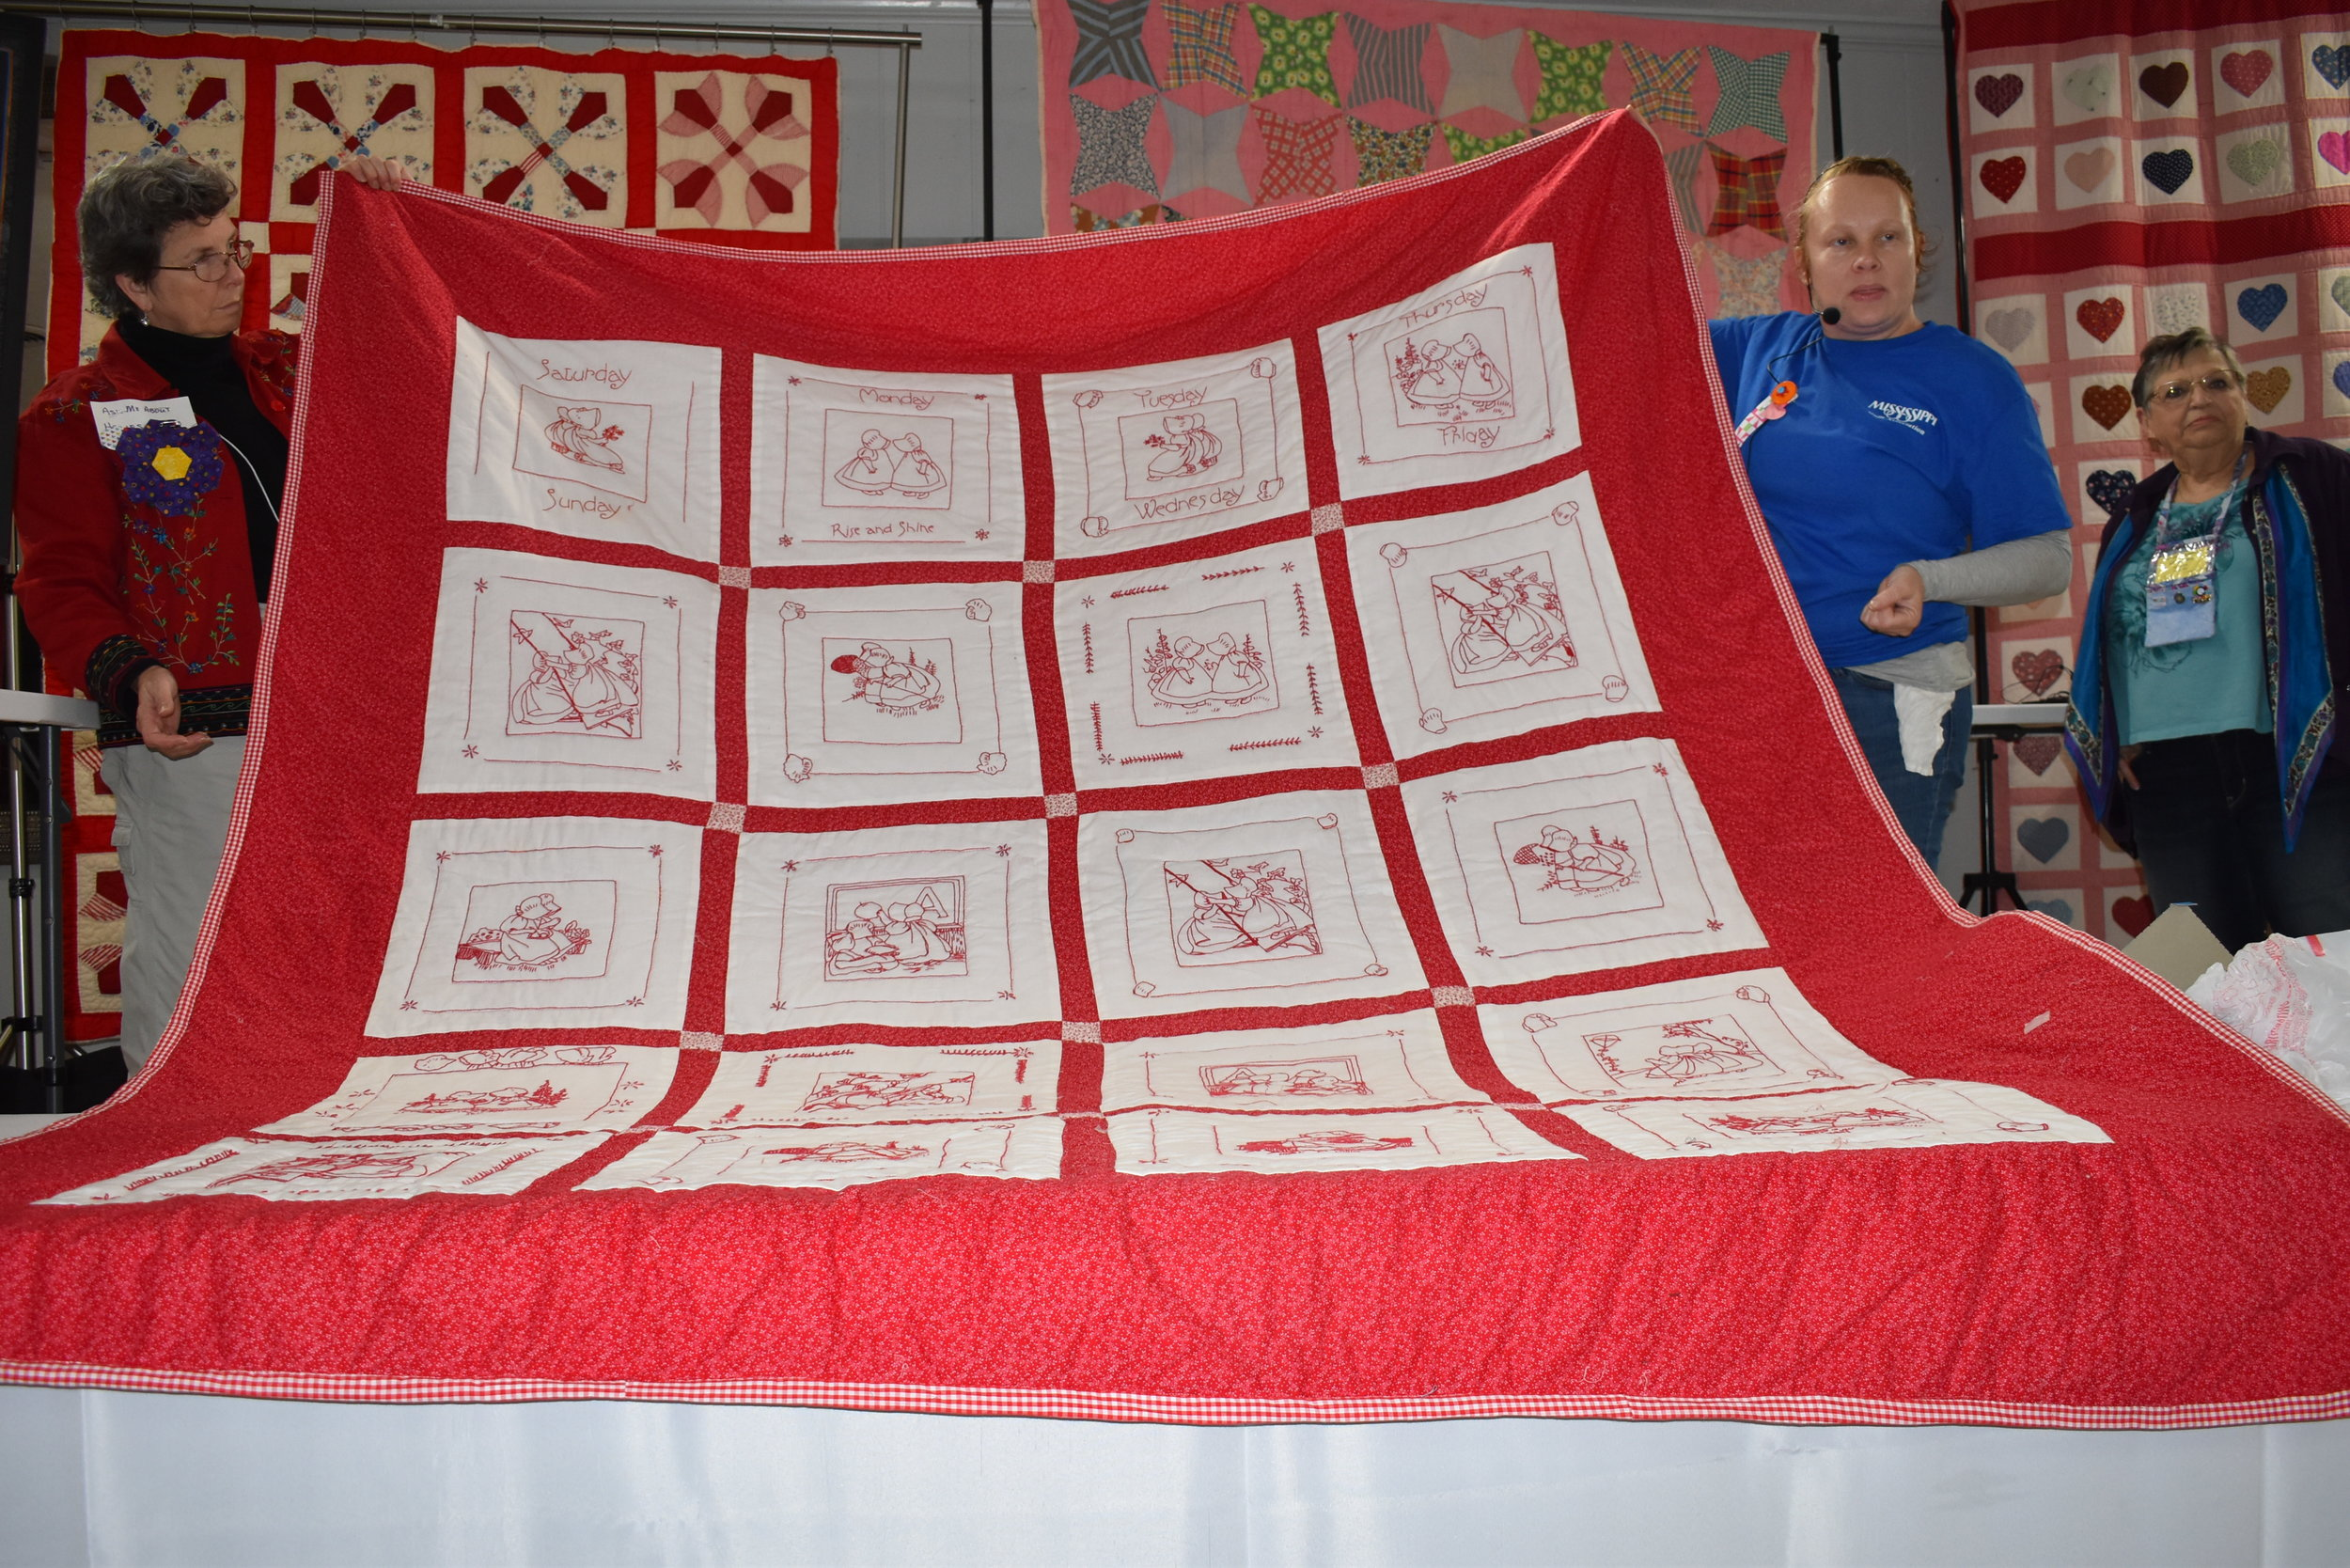 - Another one of her quilts —